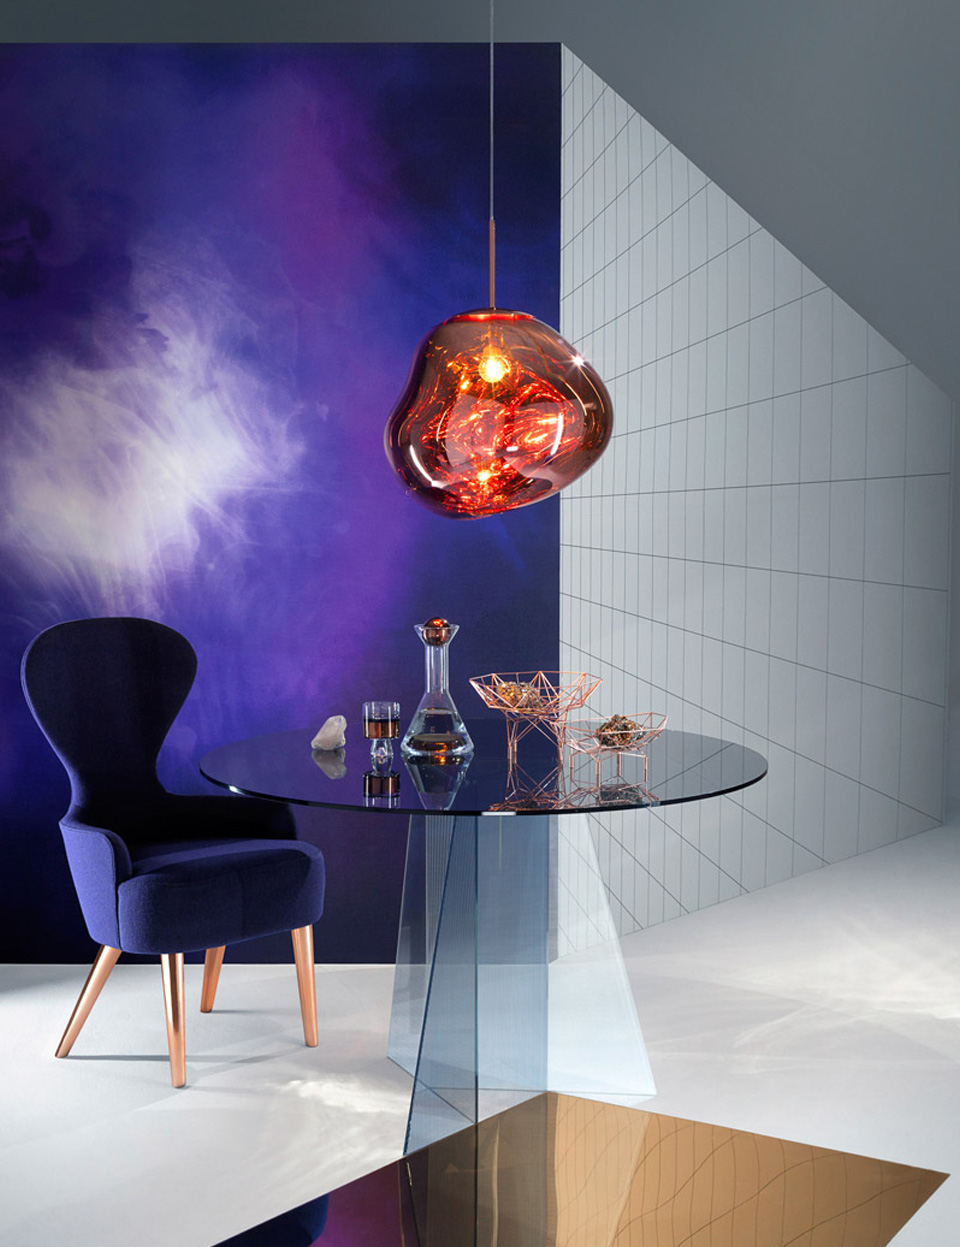 MELT PENDANT LIGHT BY TOM DIXON